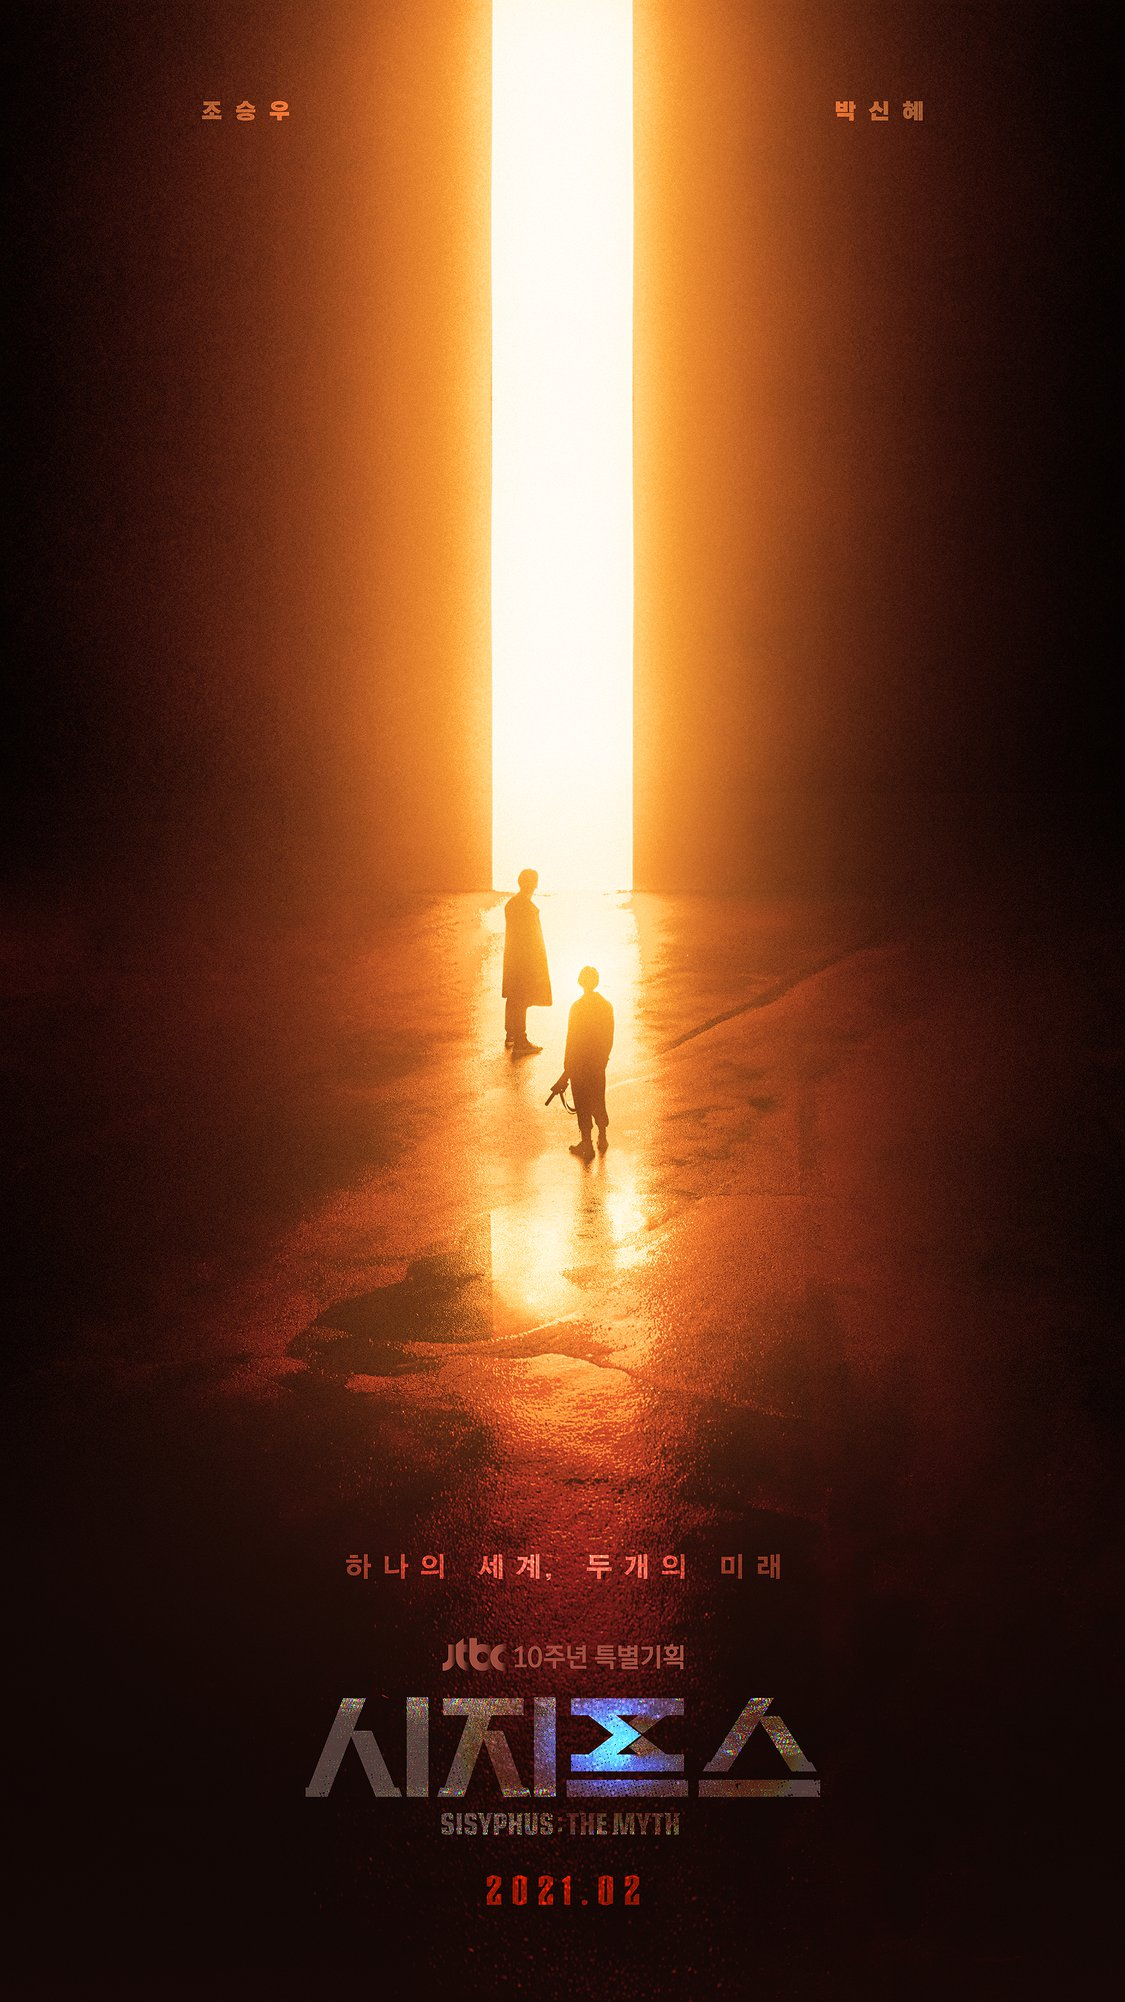 """""""Sisyphus: The Myth"""": Park Shin Hye and Cho Seung Woo's unveils a fascinating first poster"""